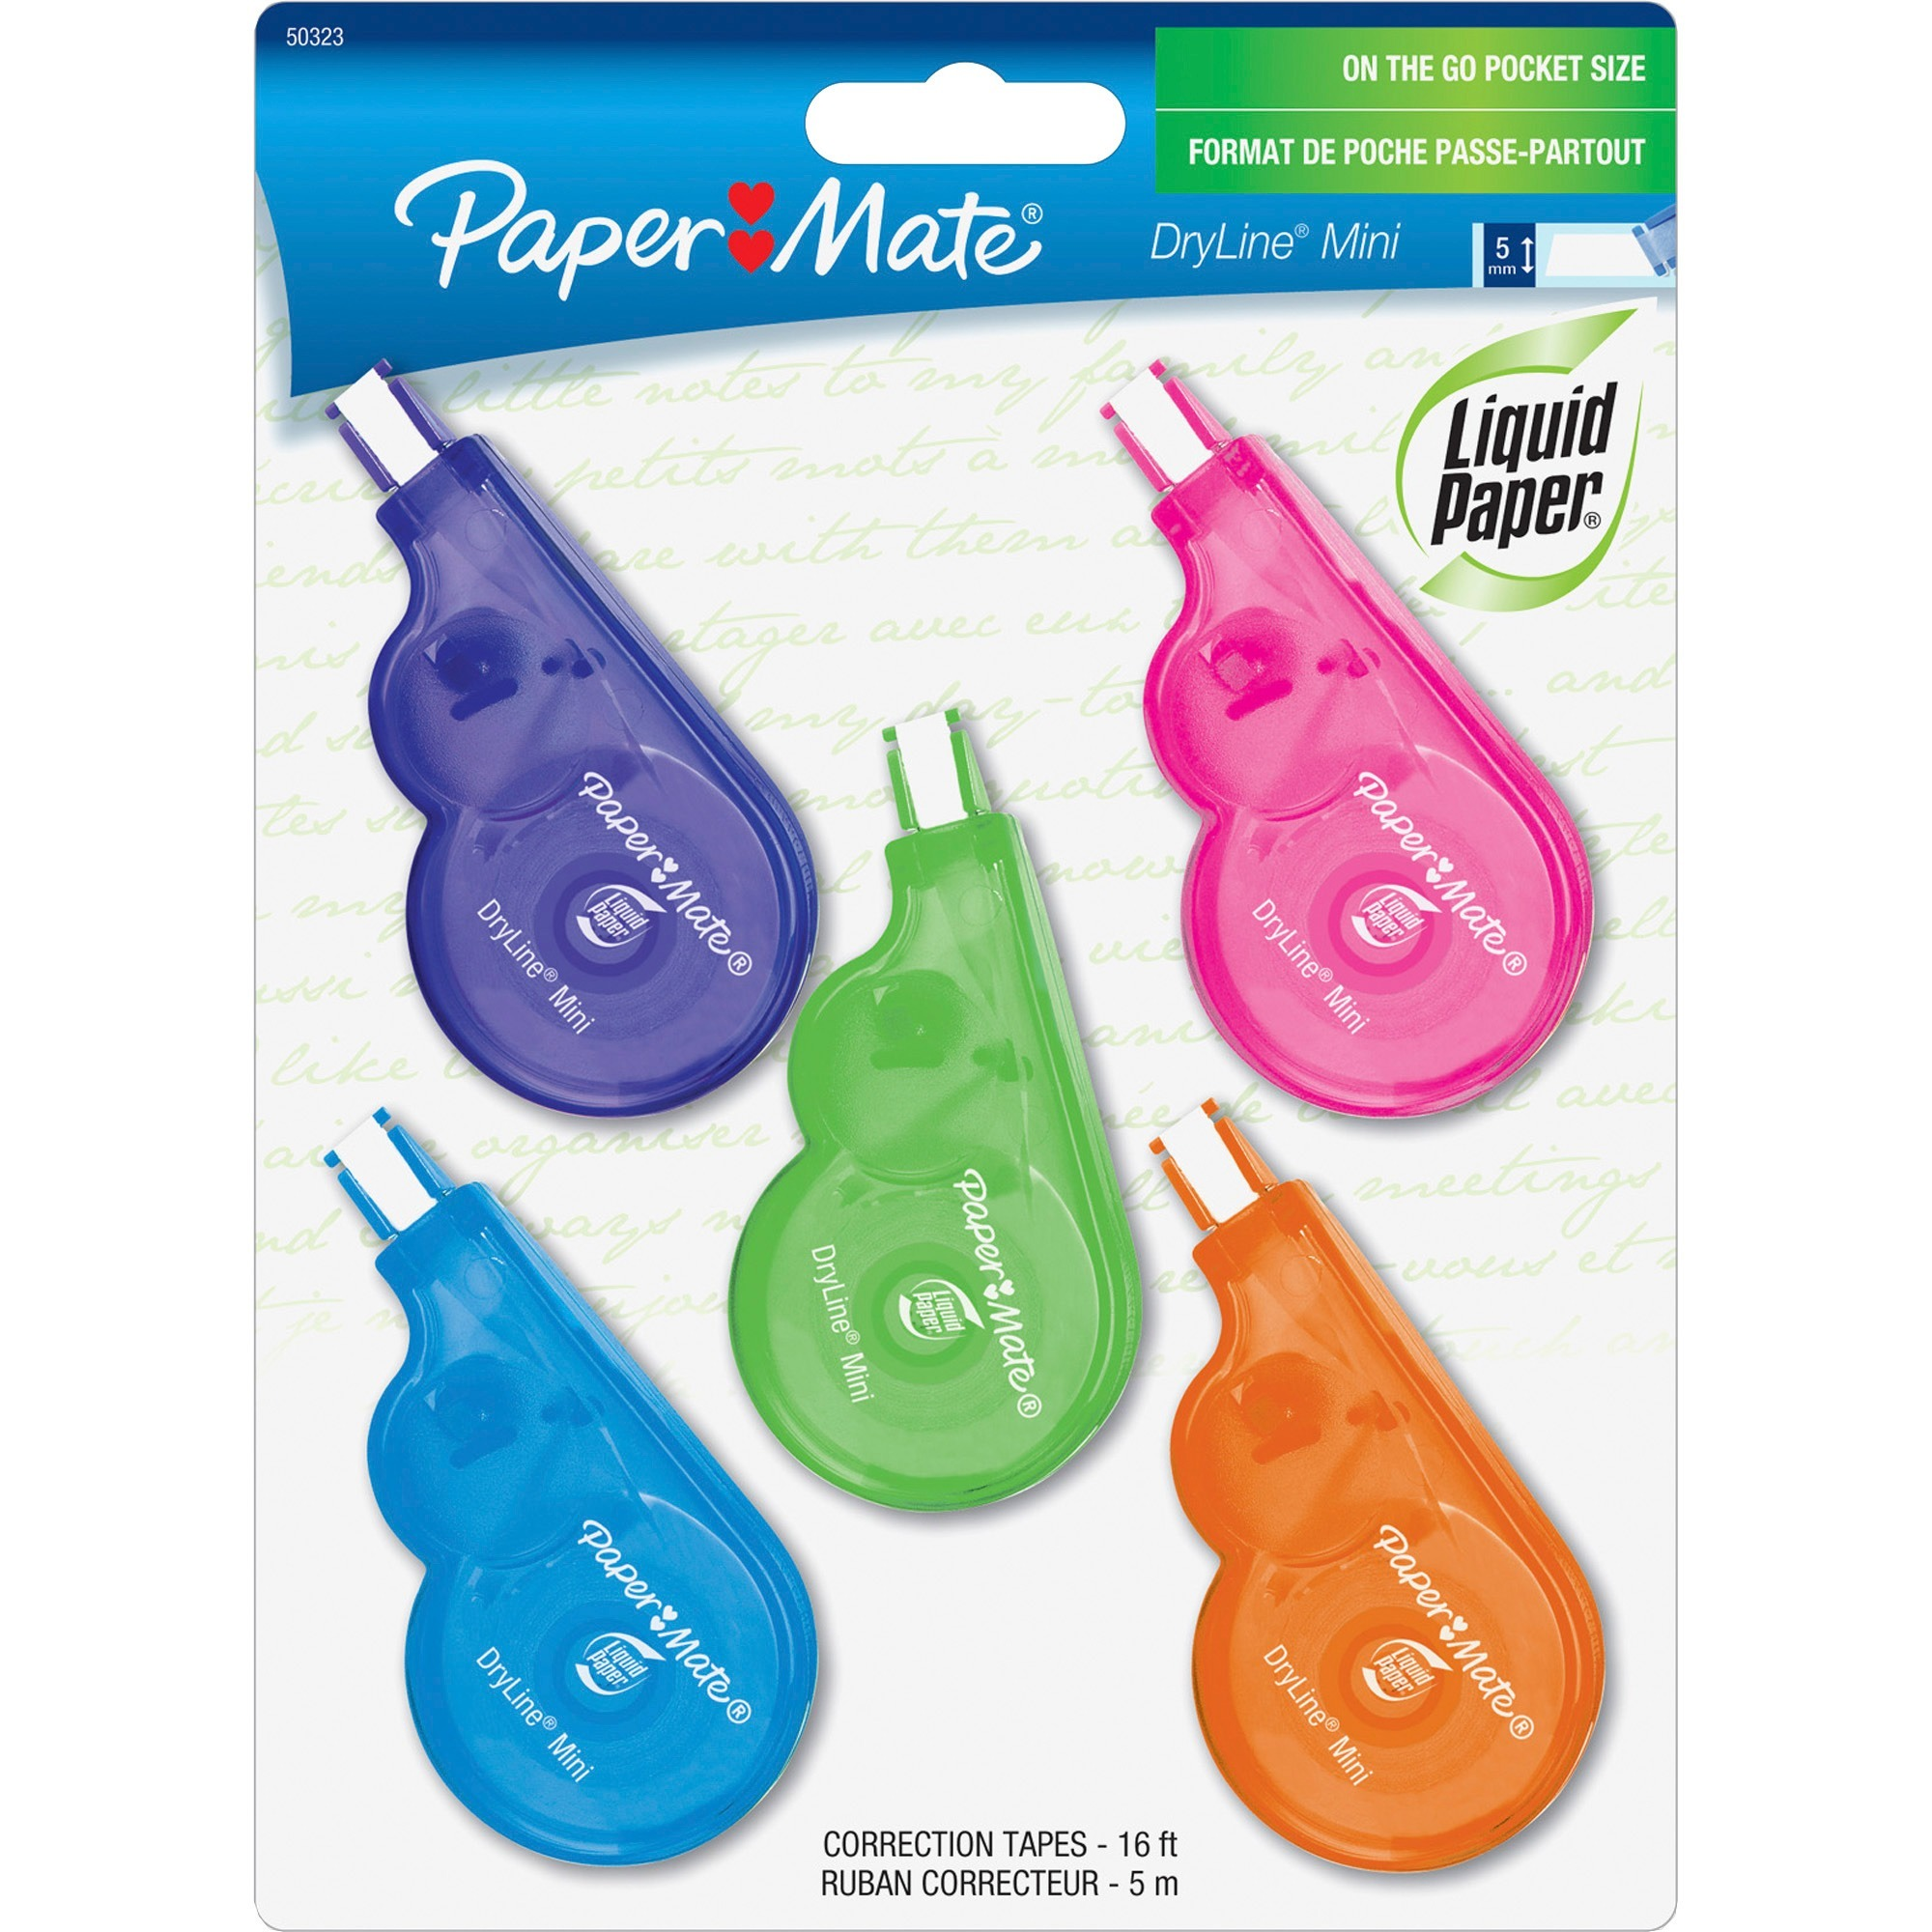 Paper Mate, PAP5032315, Dryline Mini Grip Correction Tape, 5 / Pack, Assorted